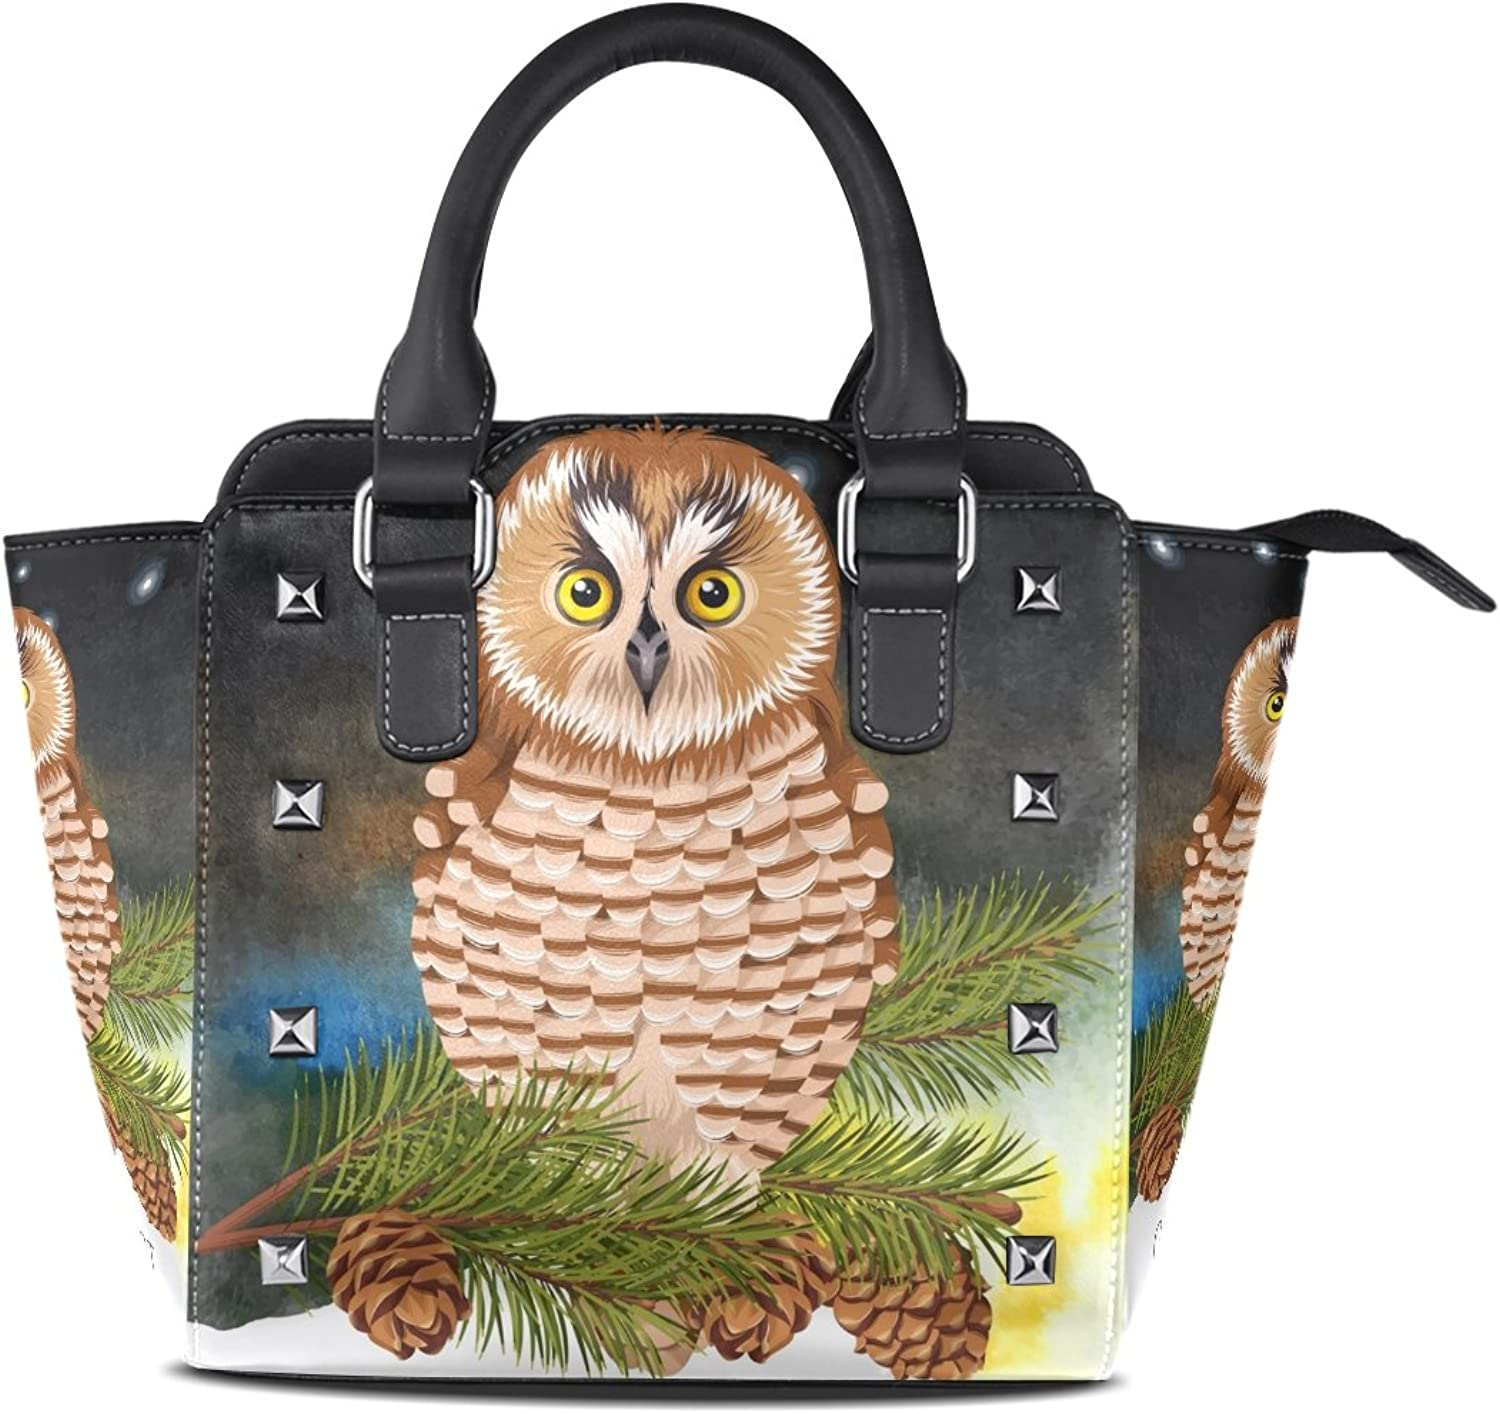 My Little Nest Women's Top Handle Satchel Handbag Forest Cute Owl Fir Branch Ladies PU Leather Shoulder Bag Crossbody Bag